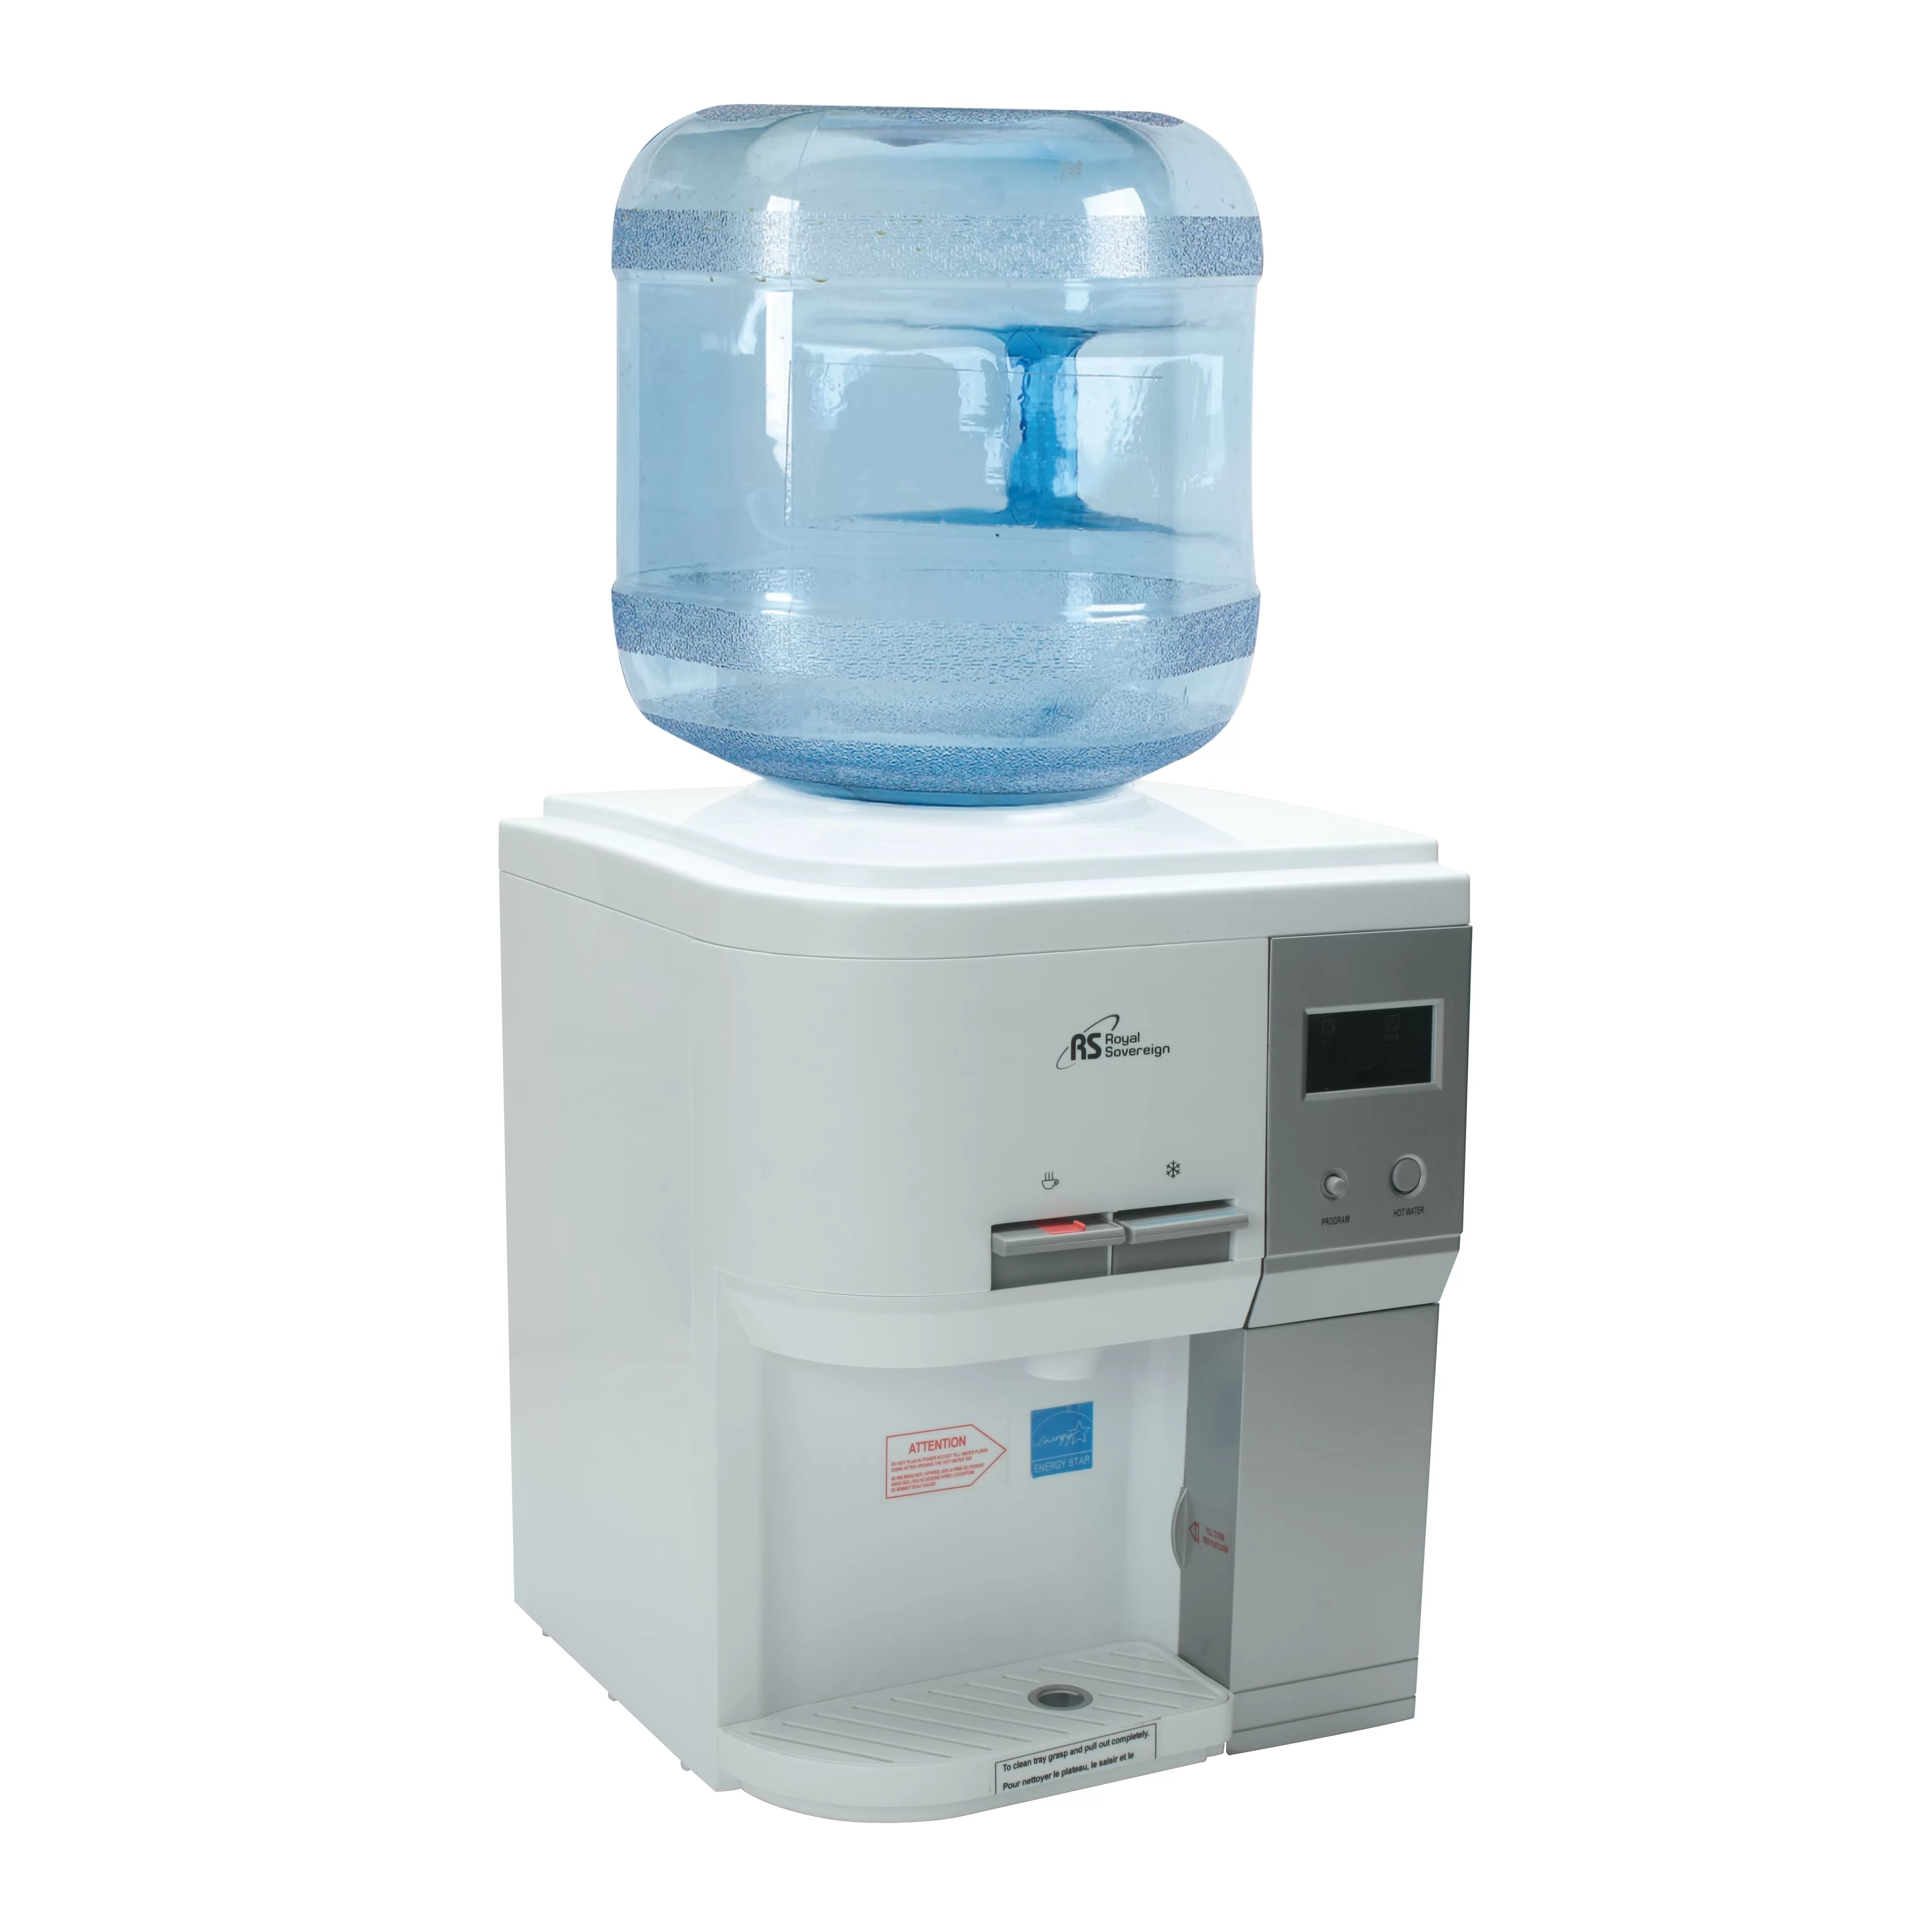 Countertop Drinking Fountain Royal Sovereign International Countertop Hot Cold And